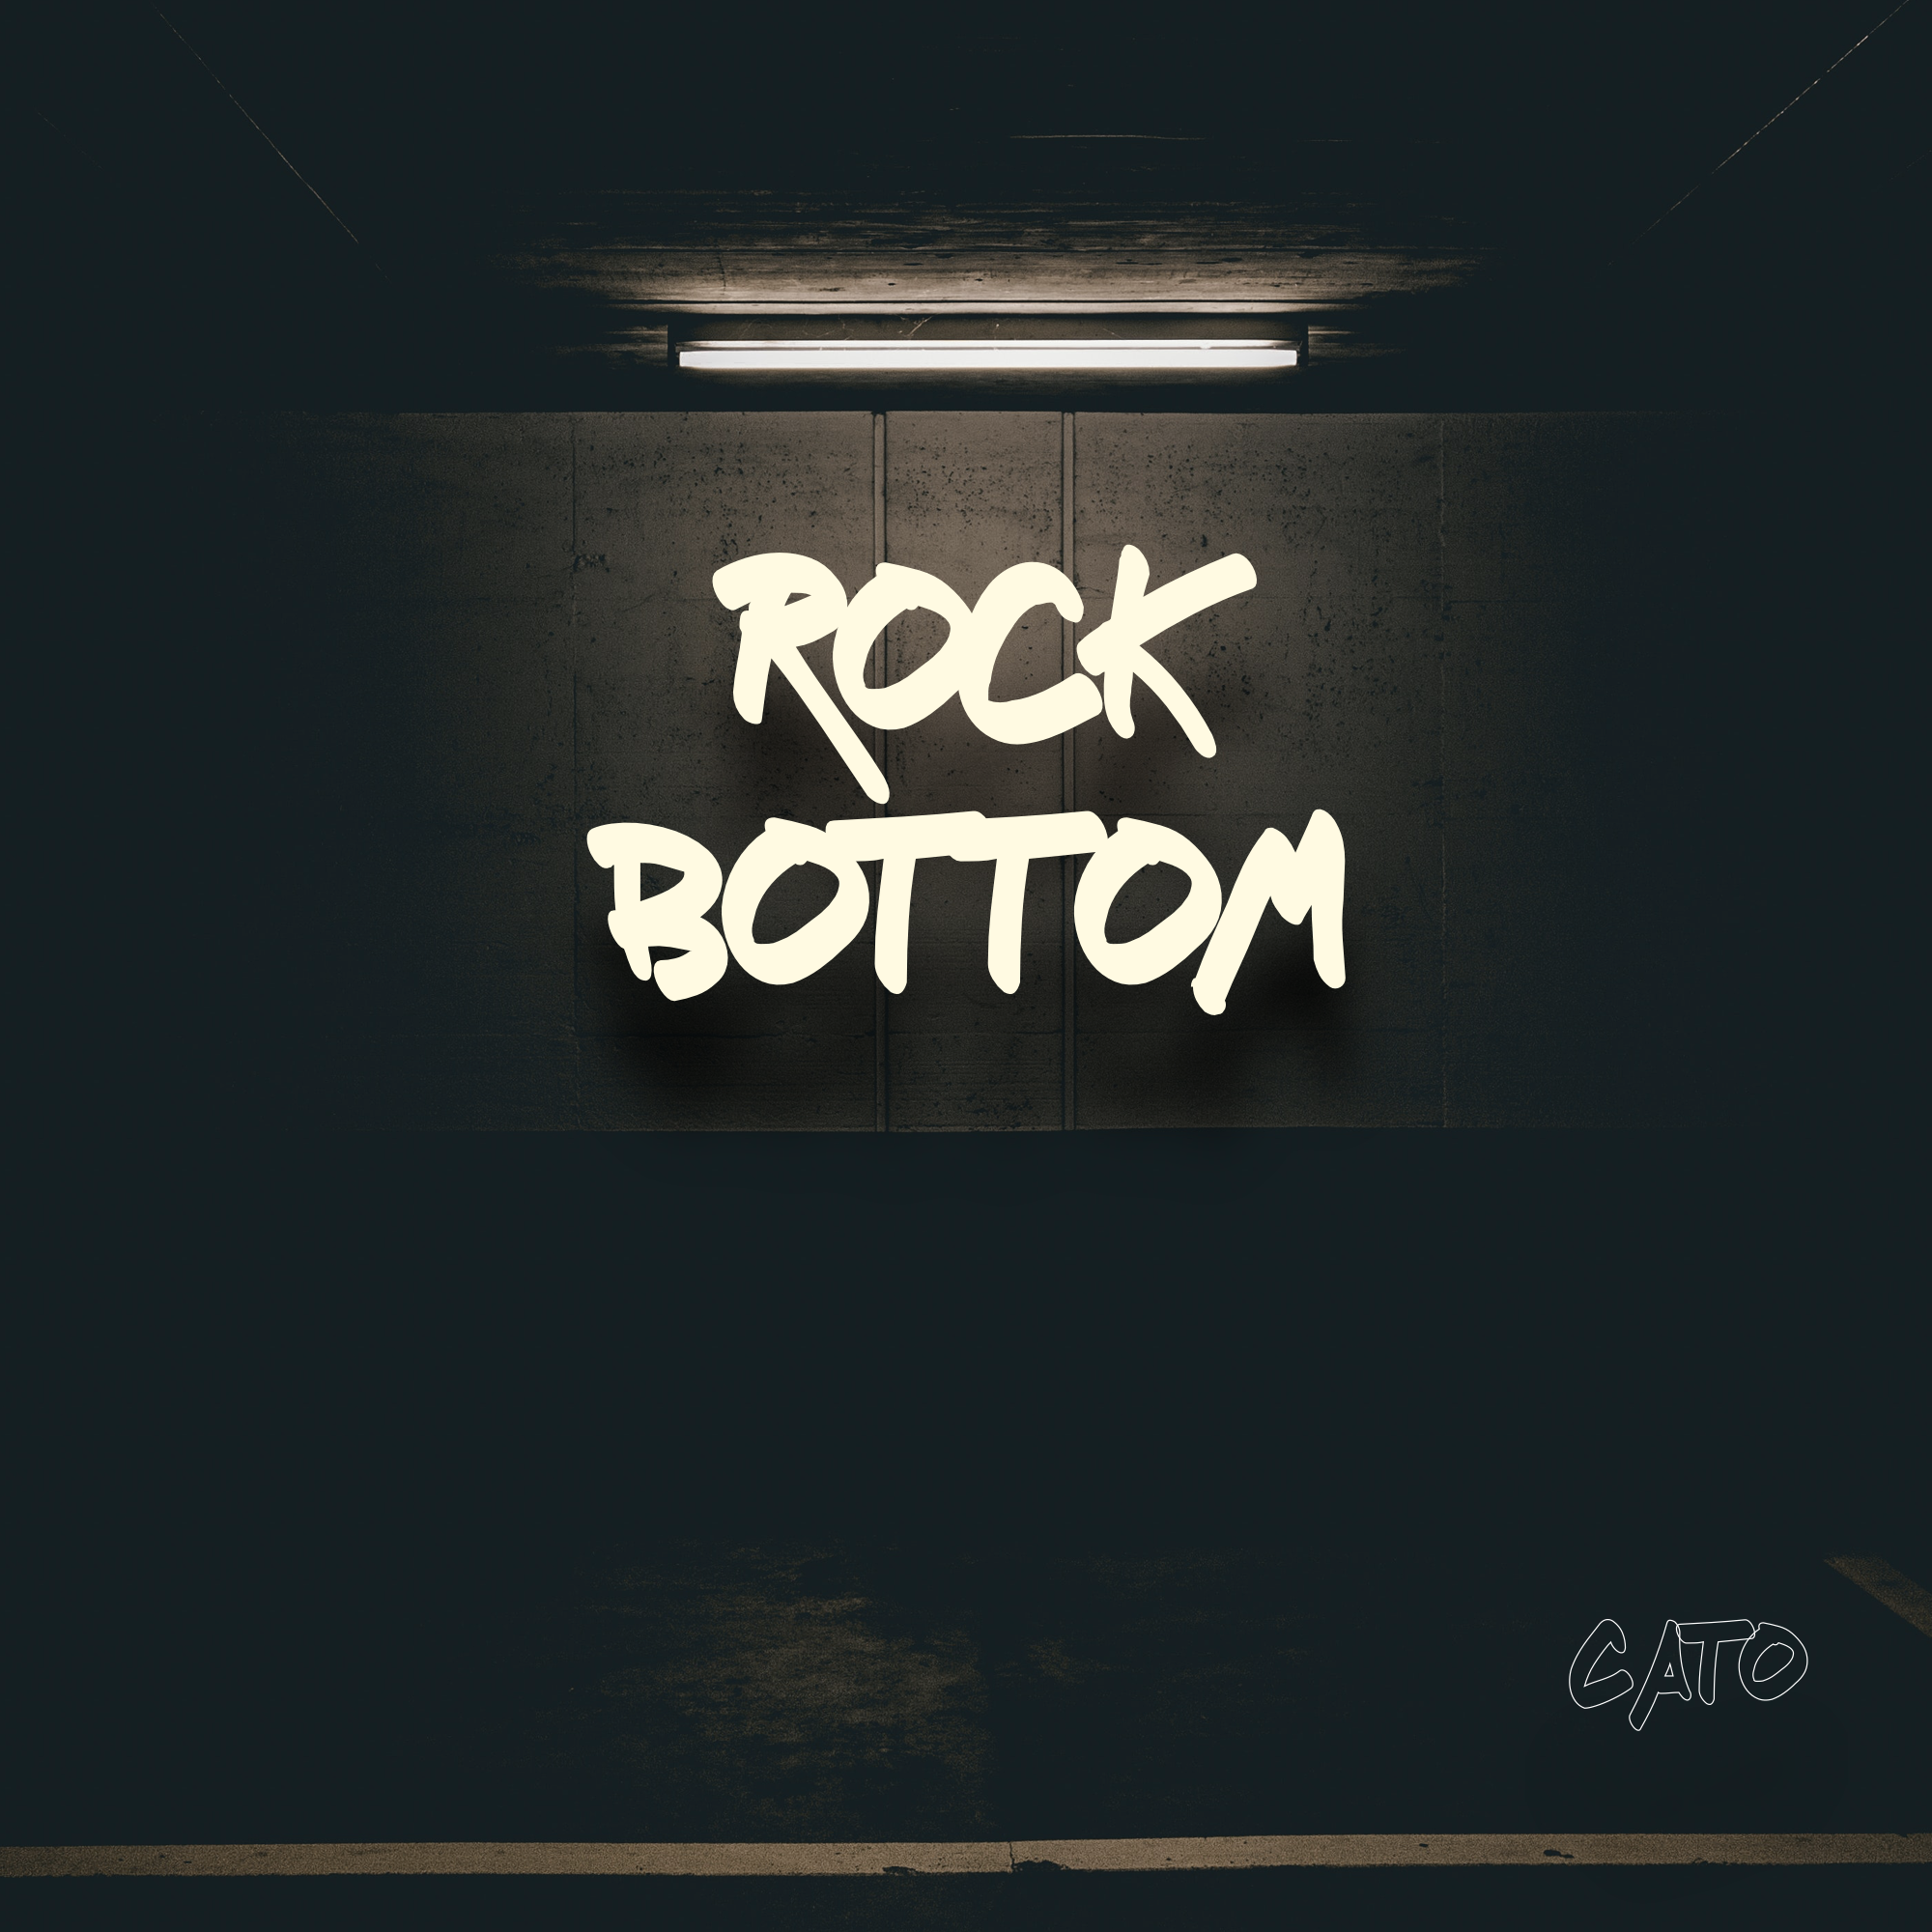 Rock Bottom Song Art - Cato